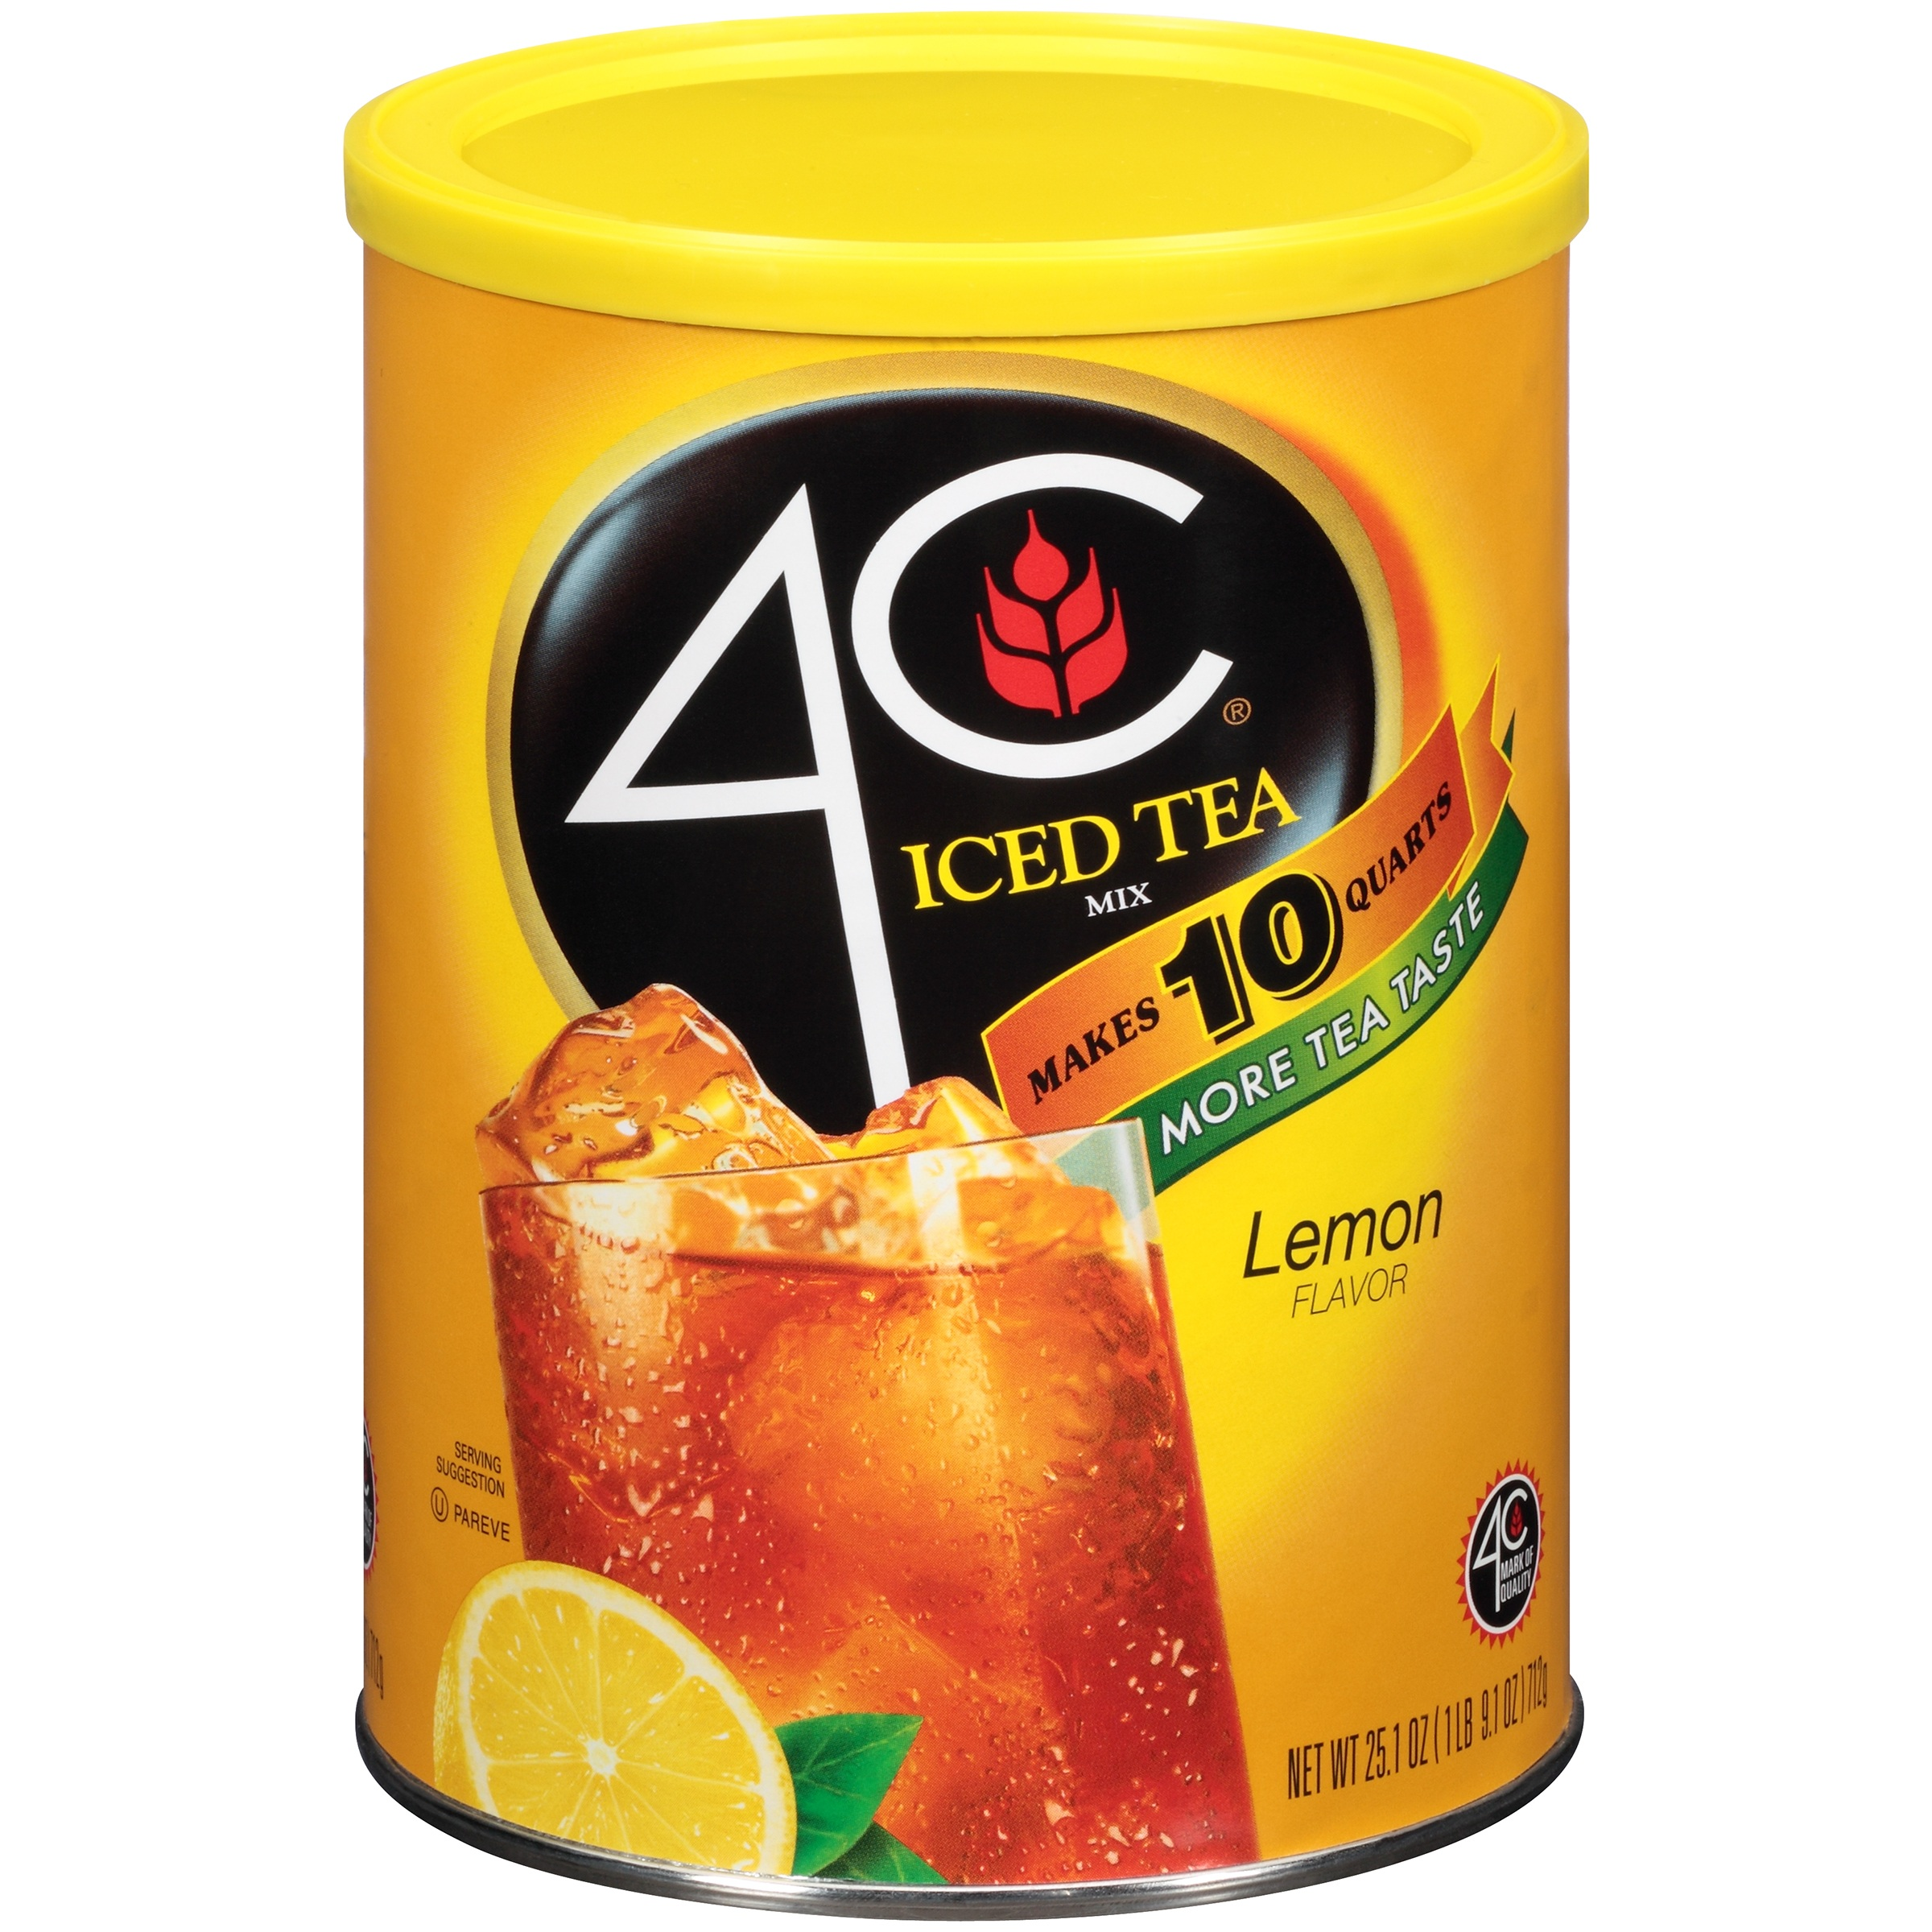 4C Drink Mix, Lemon Iced Tea, 25.1 Oz, 1 Count